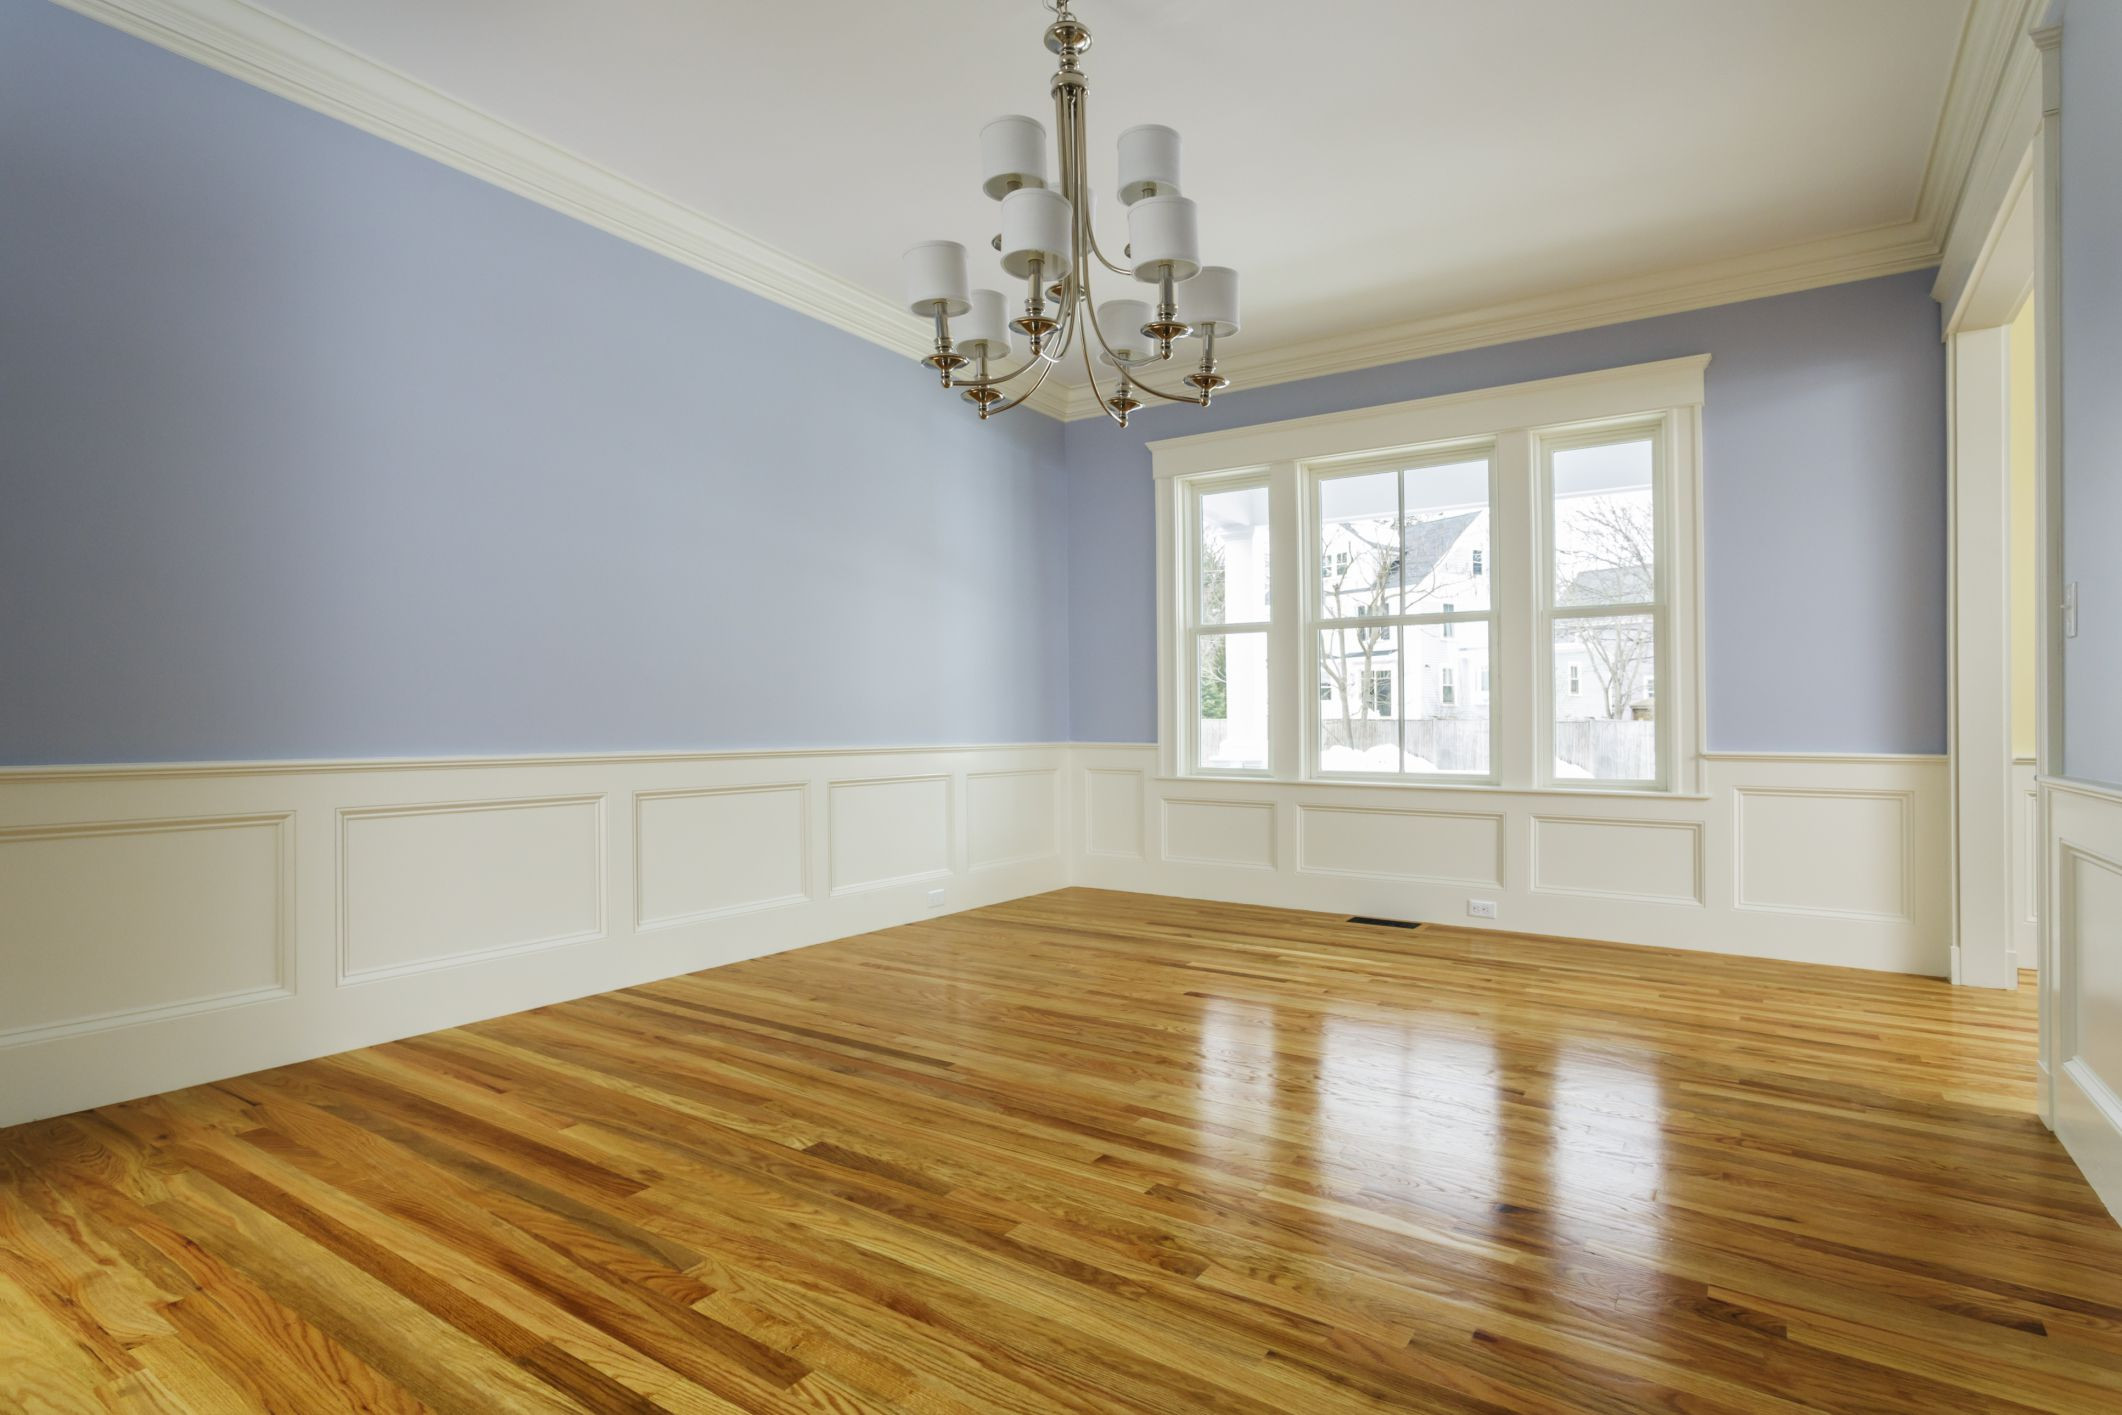 Hardwood Floor Refinishing In Tampa Of How Much to Refinish Hardwood Floors Here S the Cost to Refinish Inside How Much to Refinish Hardwood Floors Here S the Cost to Refinish Hardwood Flooring